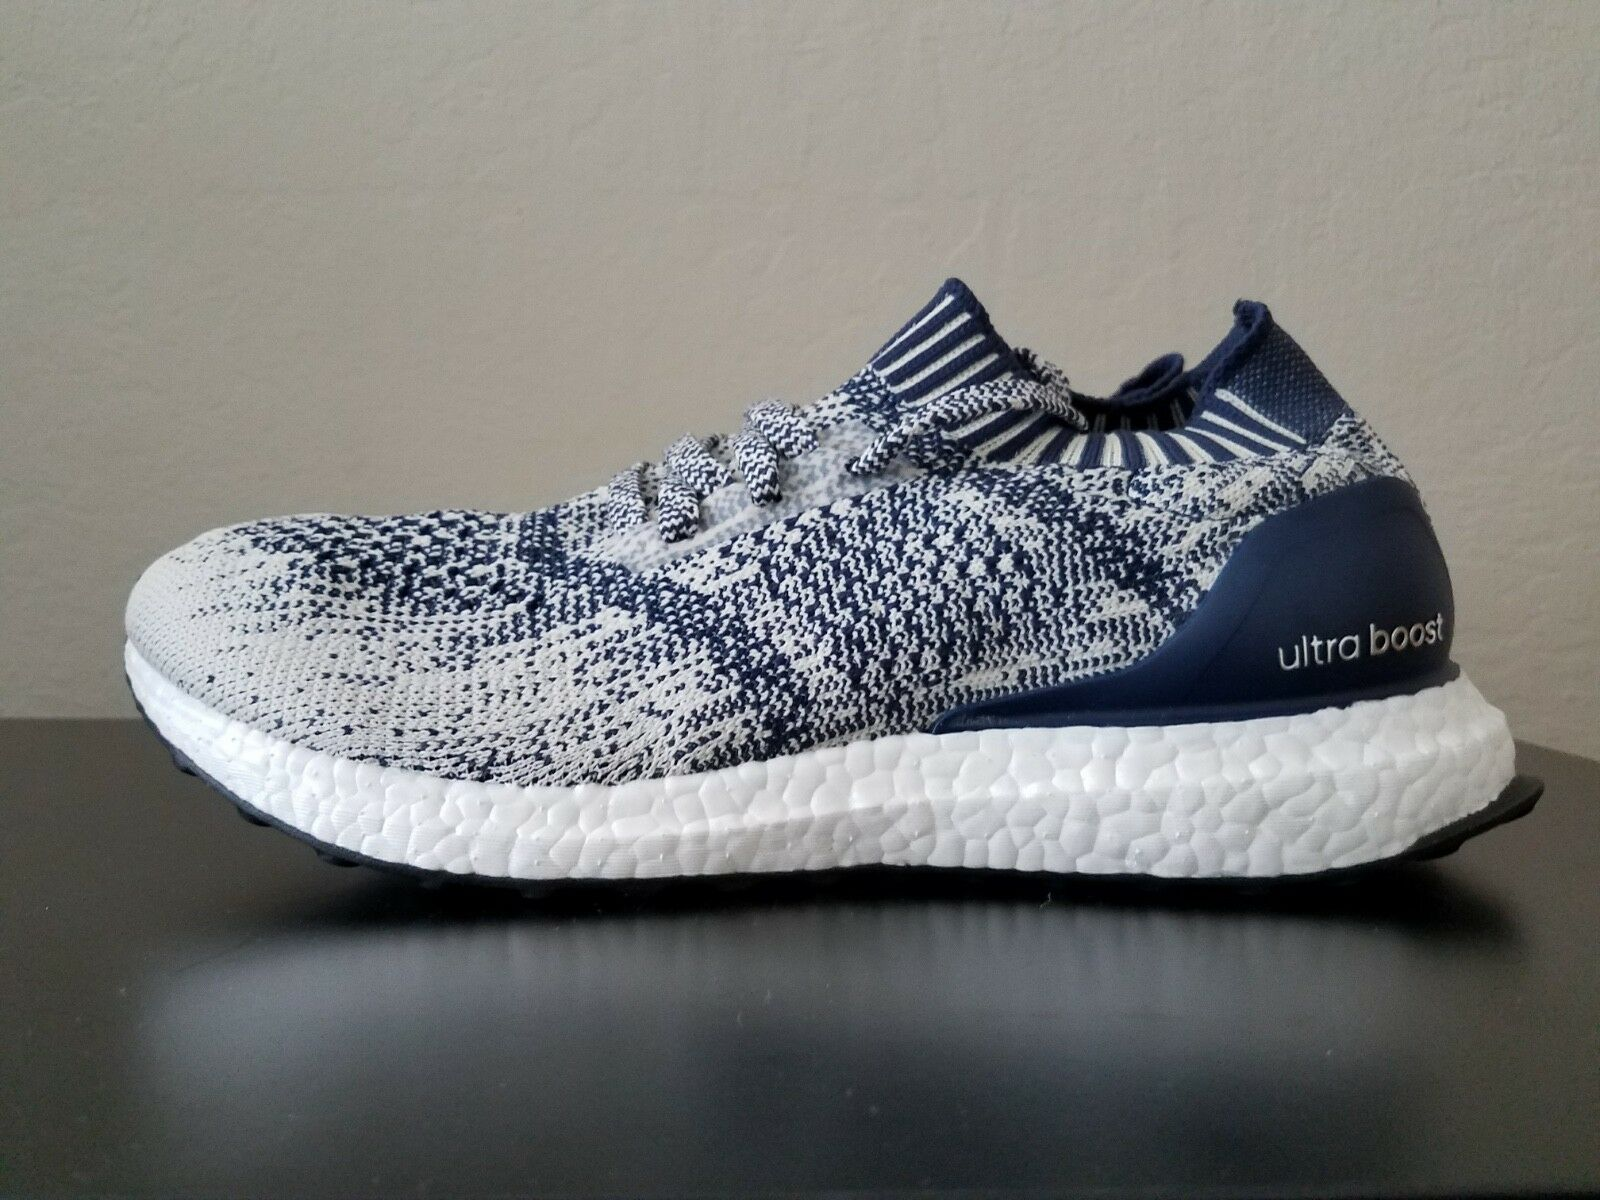 Adidas UltraBOOST Uncaged CG4096 Men's Size 9 in Cream Navy